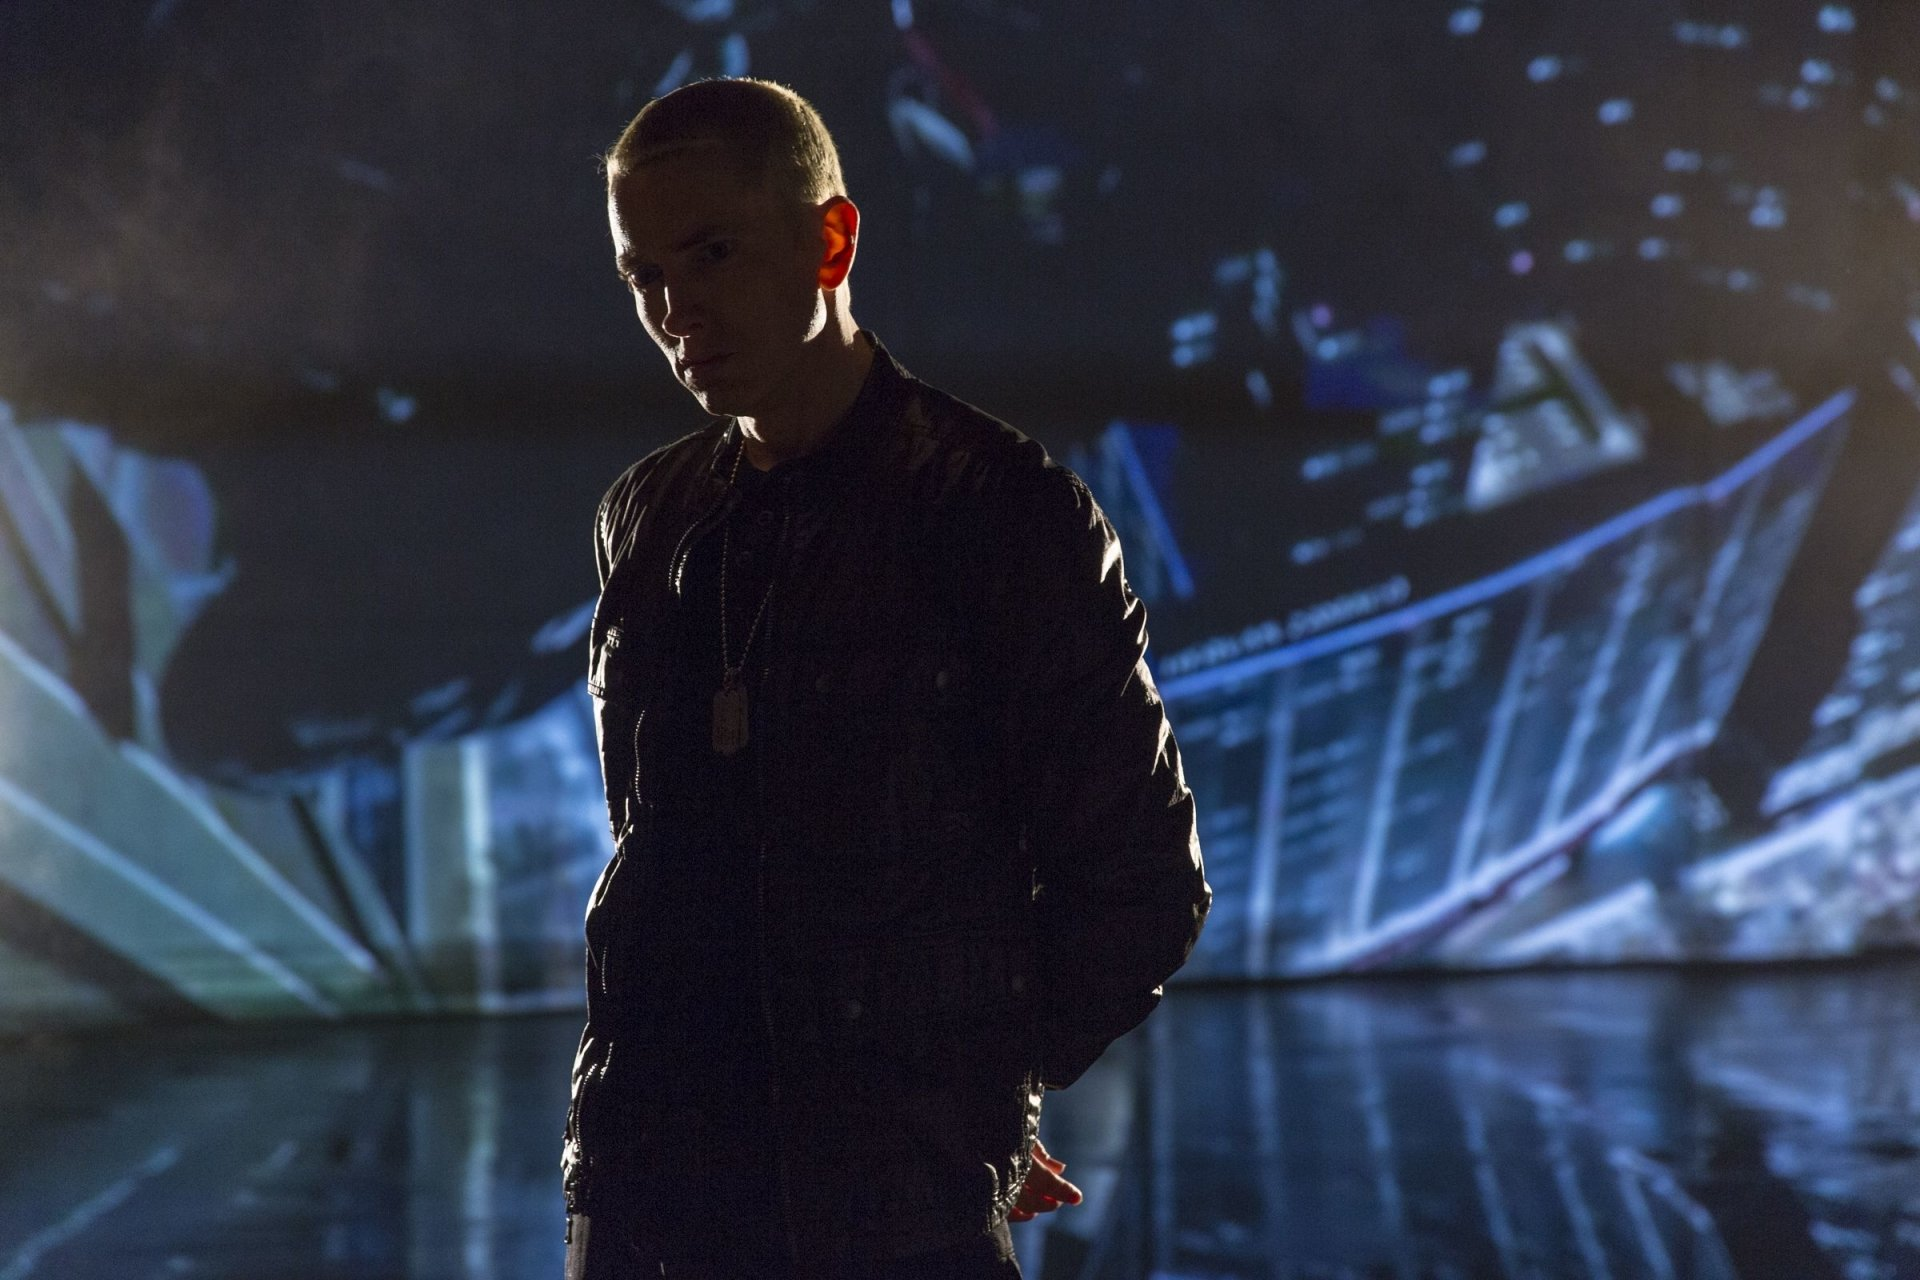 Eminem   Survival HD Wallpaper Background Image 2400x1600 ID 1920x1280